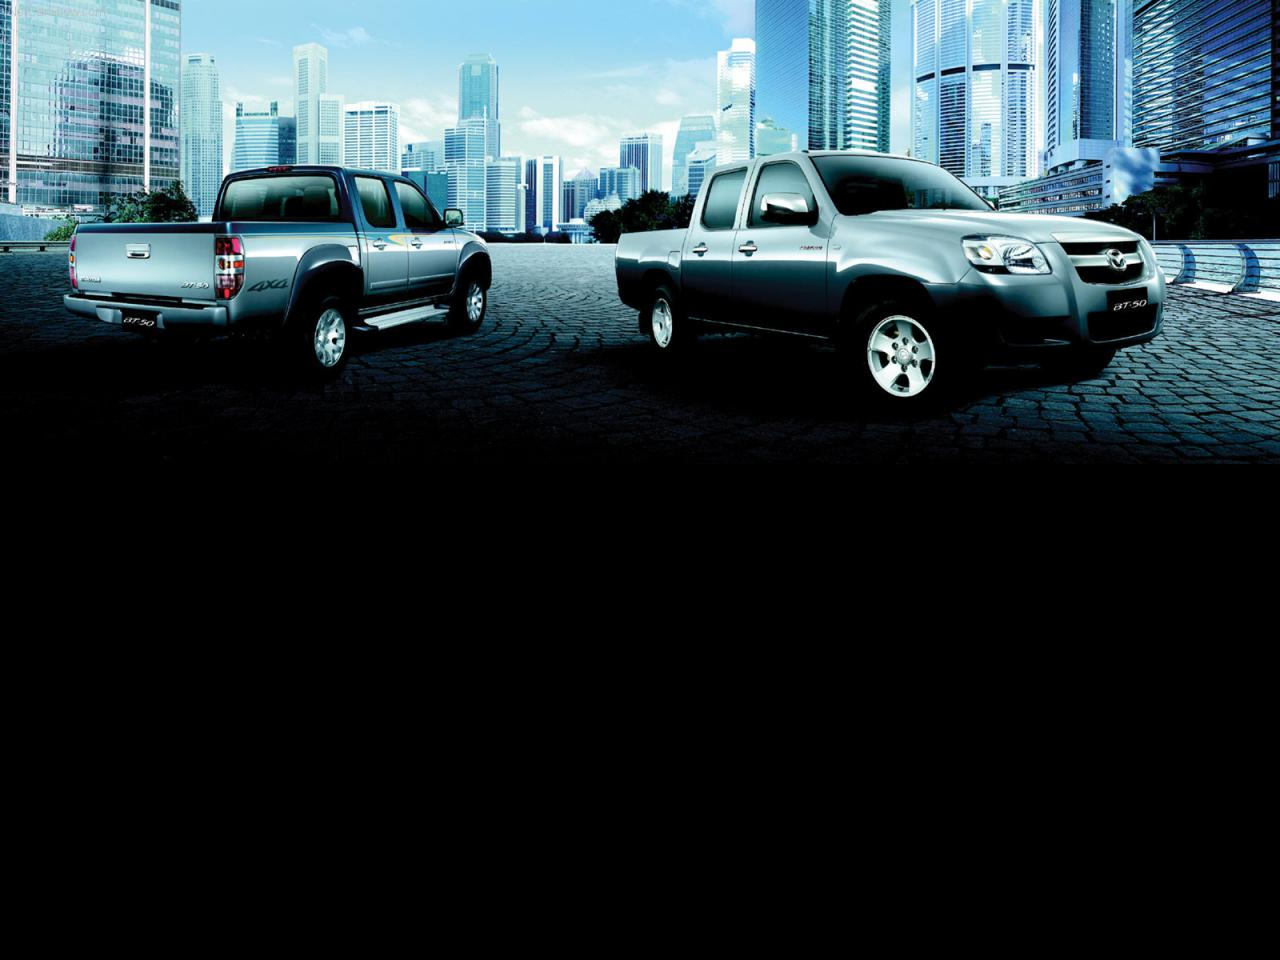 Mazda Bt 50 2006 1600x1200 Wallpaper 0a